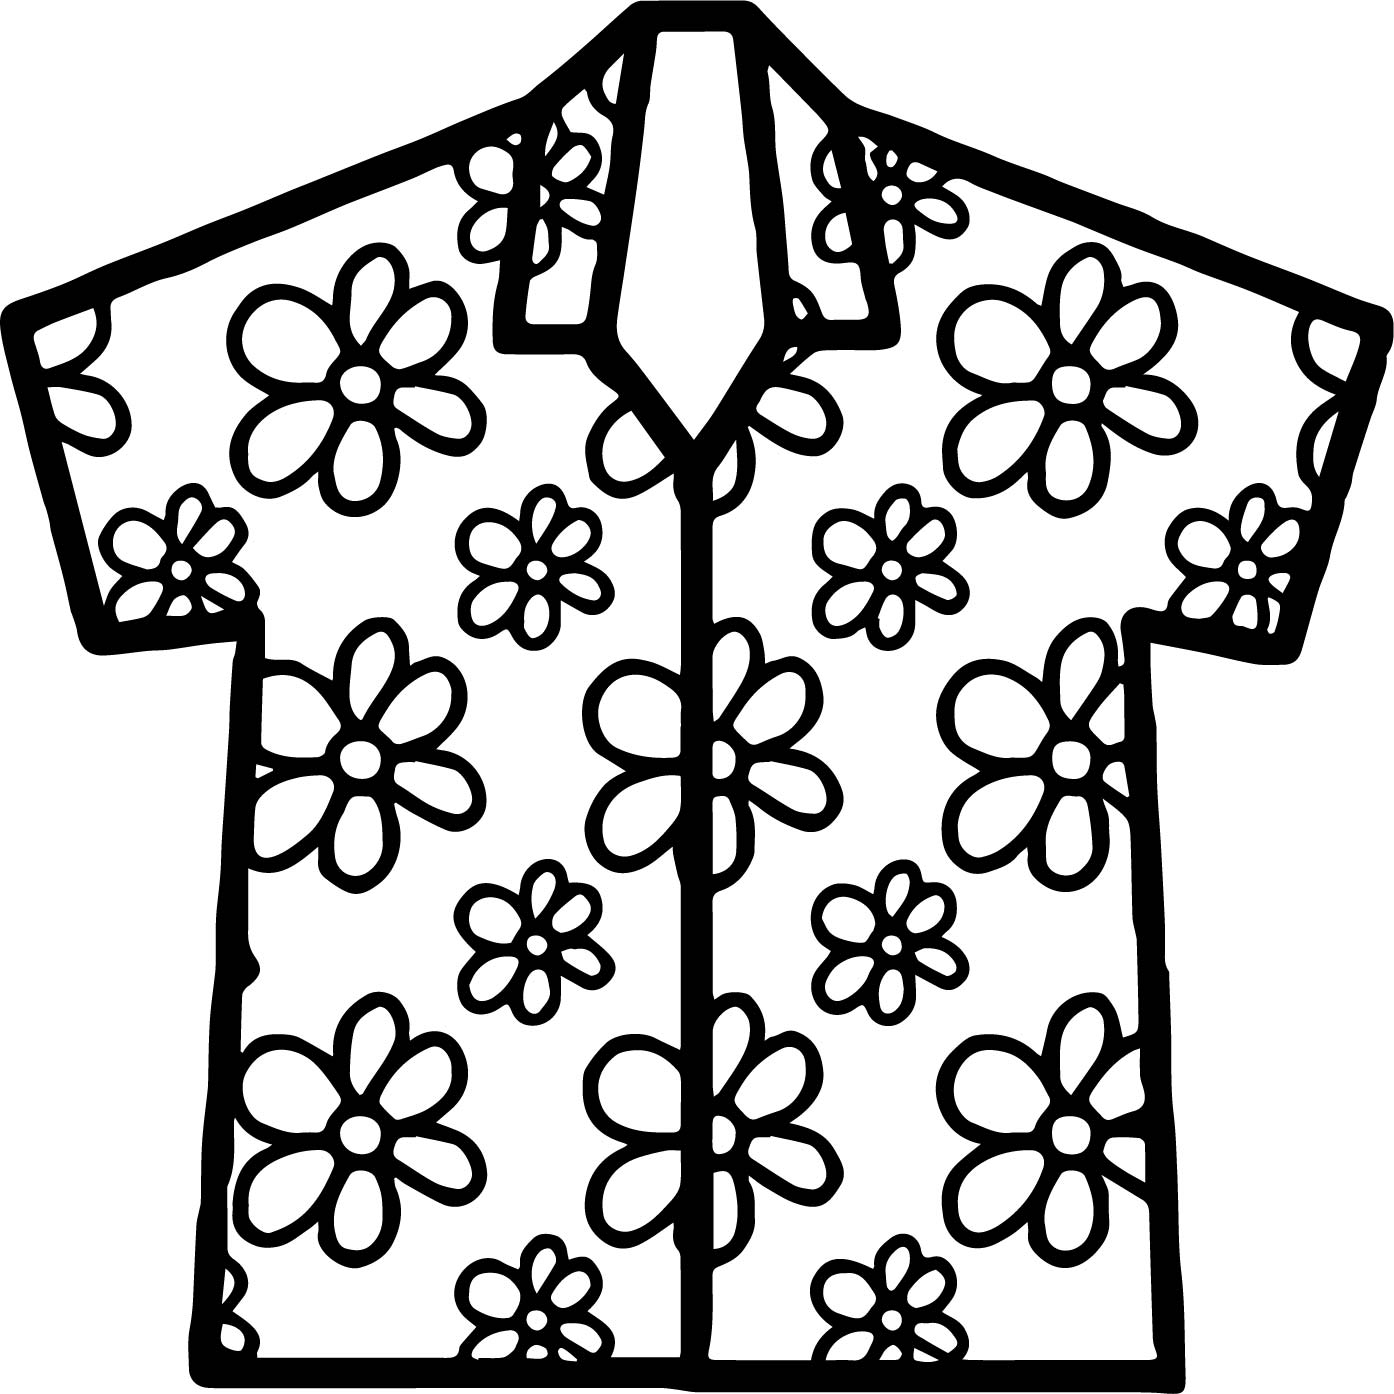 coloring pages of a shirt | Hawaiian Shirt Coloring Page | Wecoloringpage.com